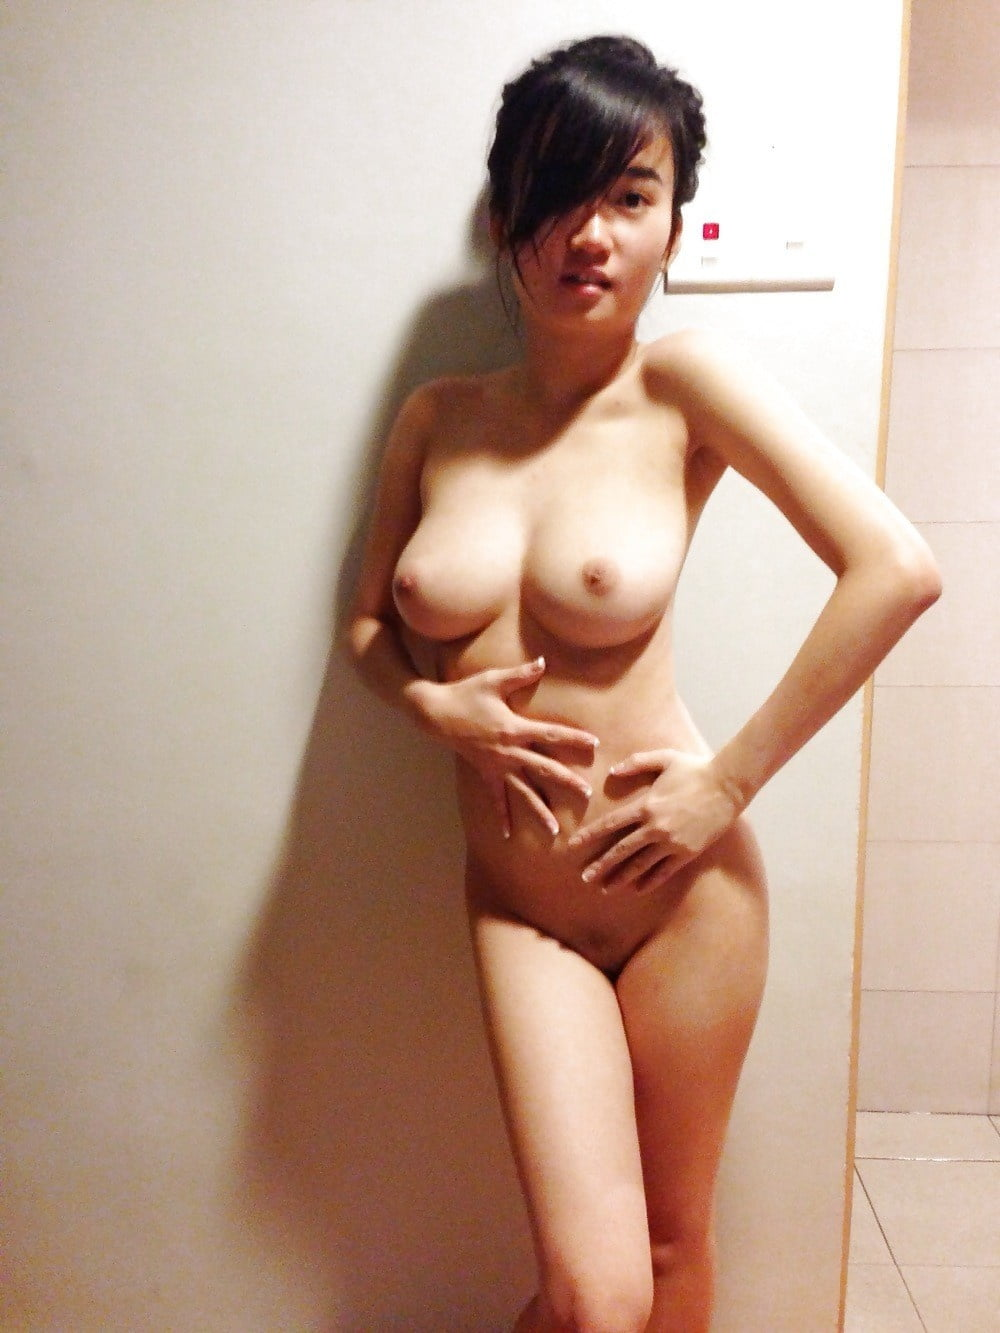 singaporean-girls-big-tits-girls-naked-wet-juicy-ass